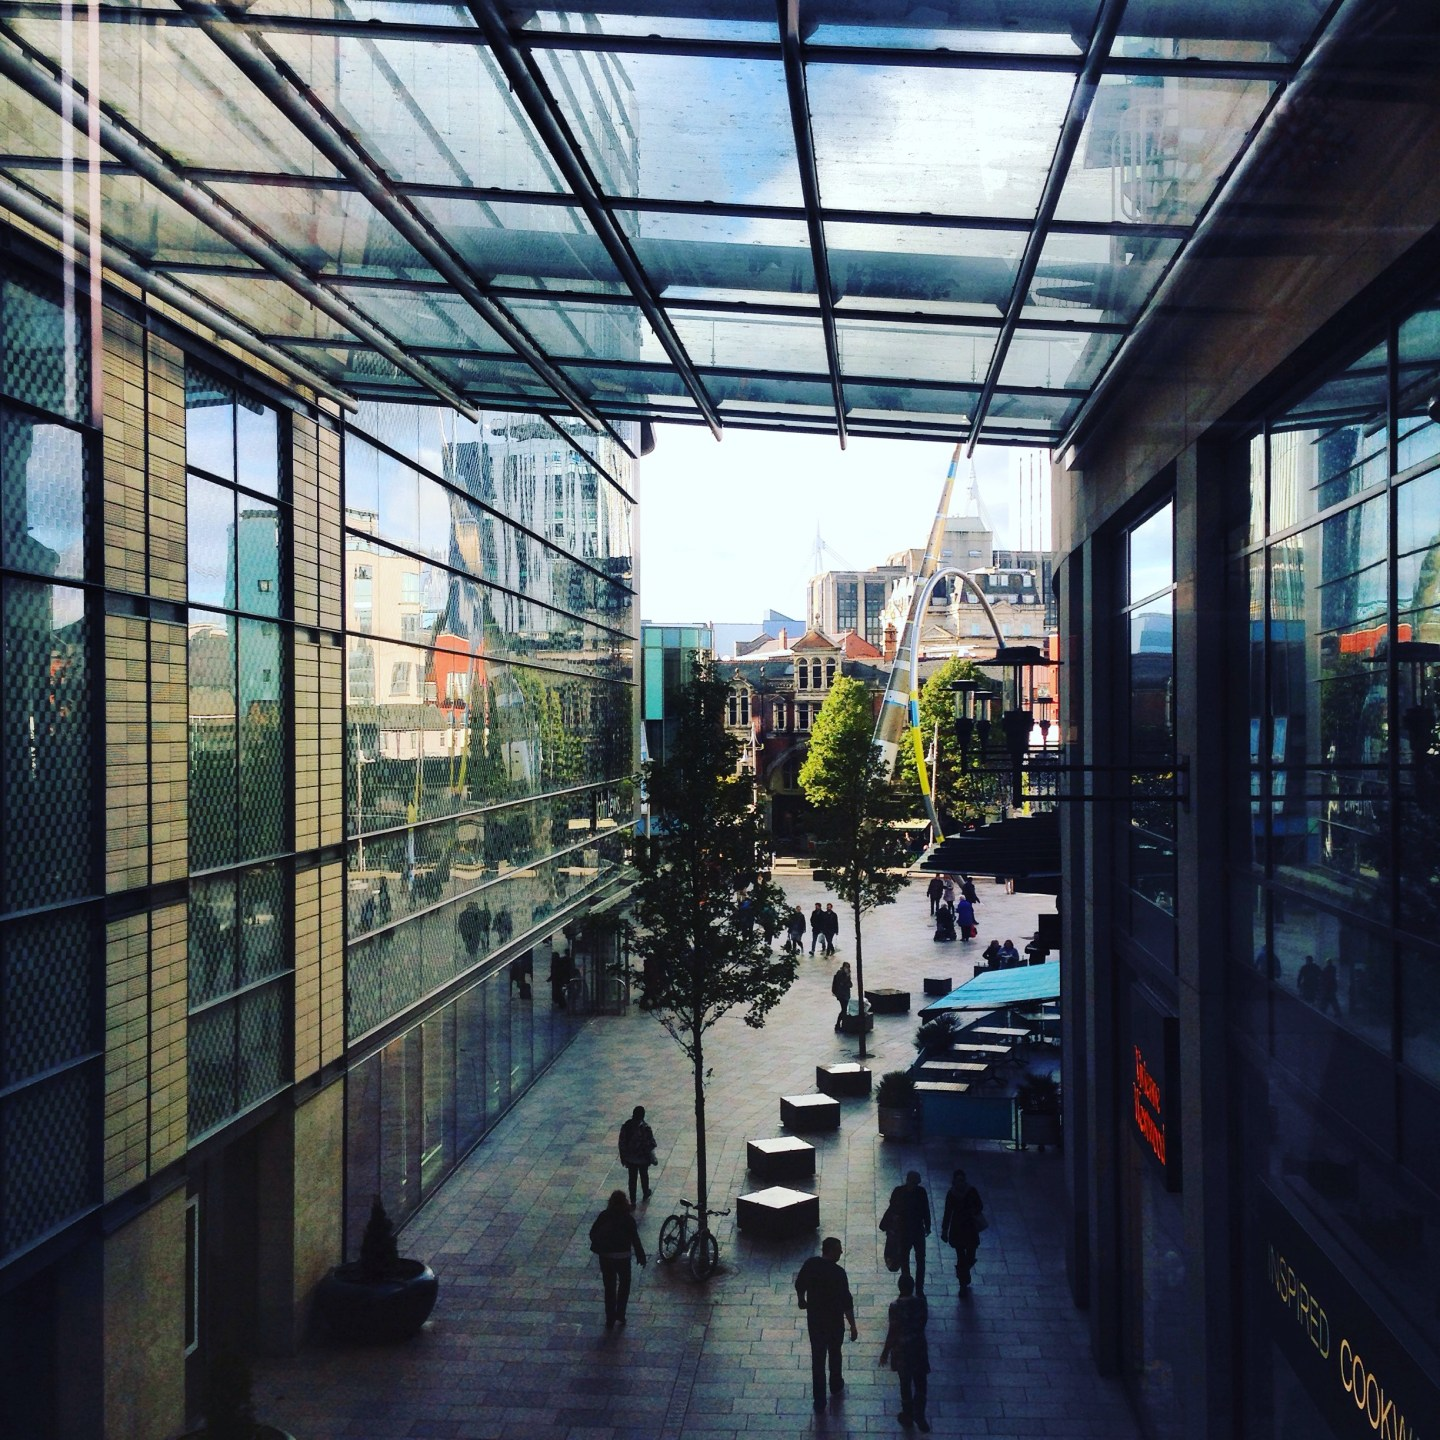 The view from St David's Arcade